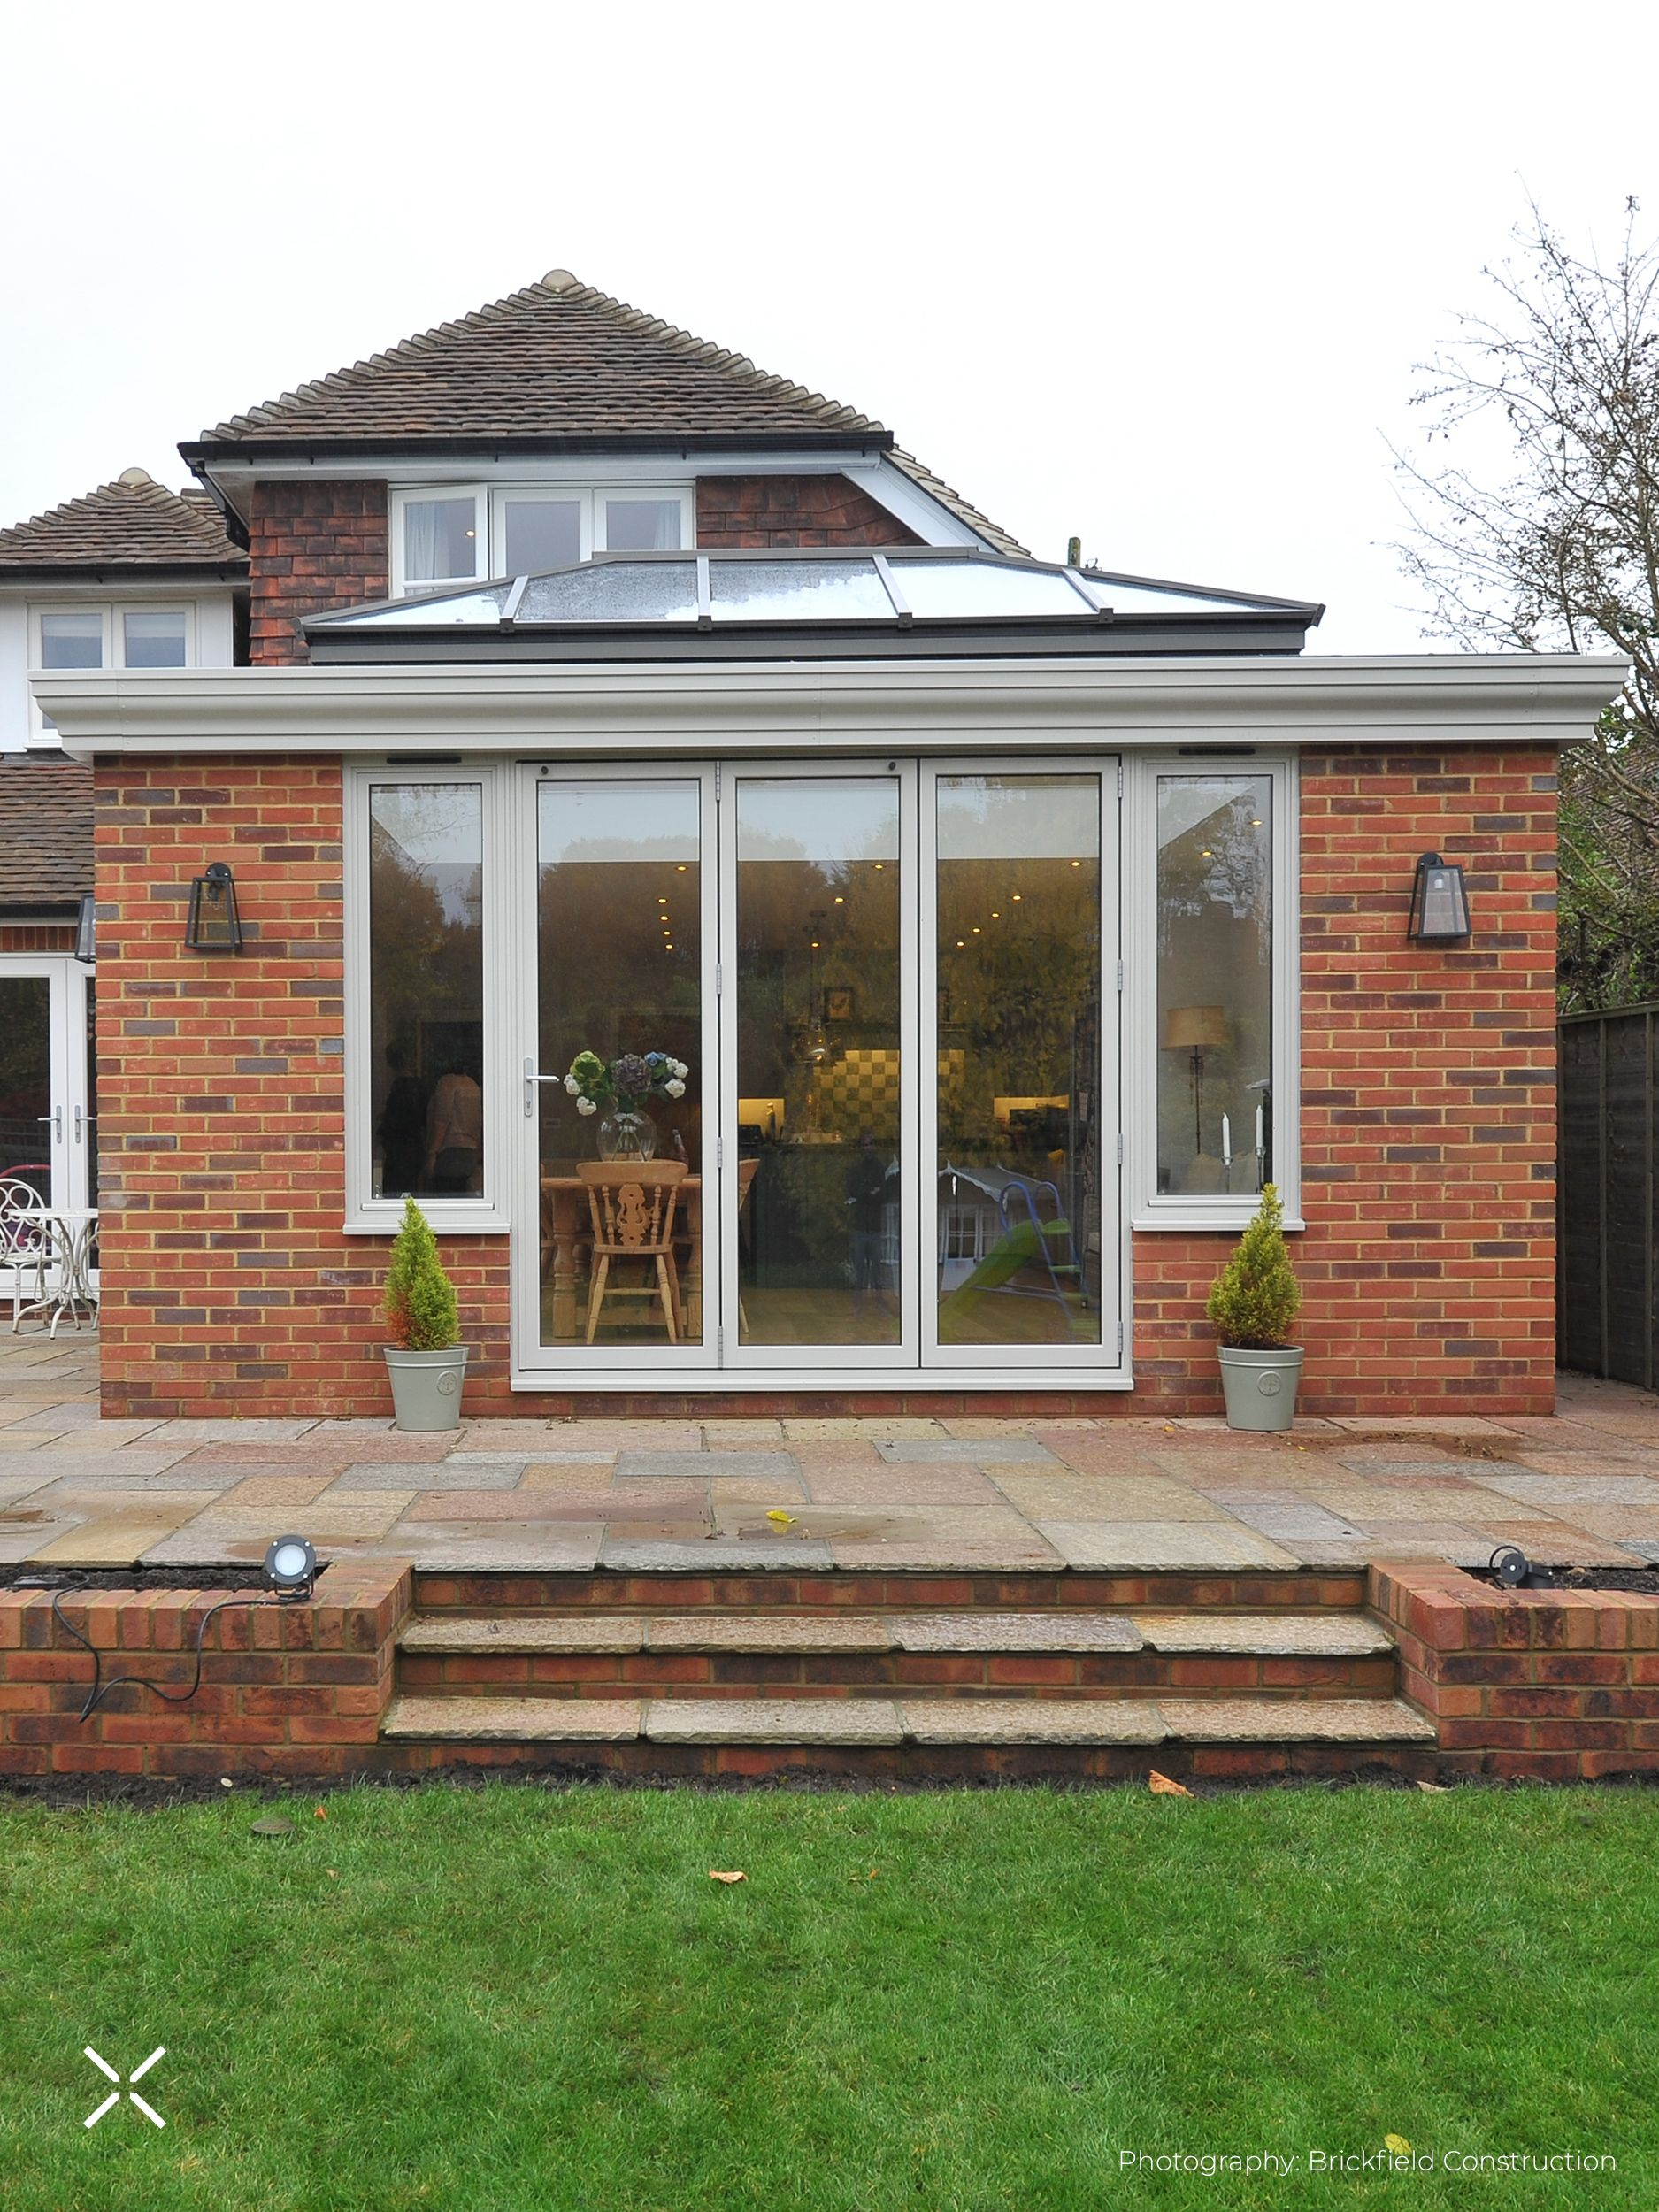 As part of a rear extension project, we supplied a range of glazing products to this home in Witley, Surrey. Including a Roof Lantern, two sets of Bifold Doors and Windows. The roof lantern was powder coated in bespoke dual-RAL colours to complement the internal and external design. The slim profiles of the roof lantern and the windows and doors adds an understated elegance to the finished look. #rooflantern #orangery #homeinspo #rearextension #improvedontmove #rooflight #aluminiumglazing